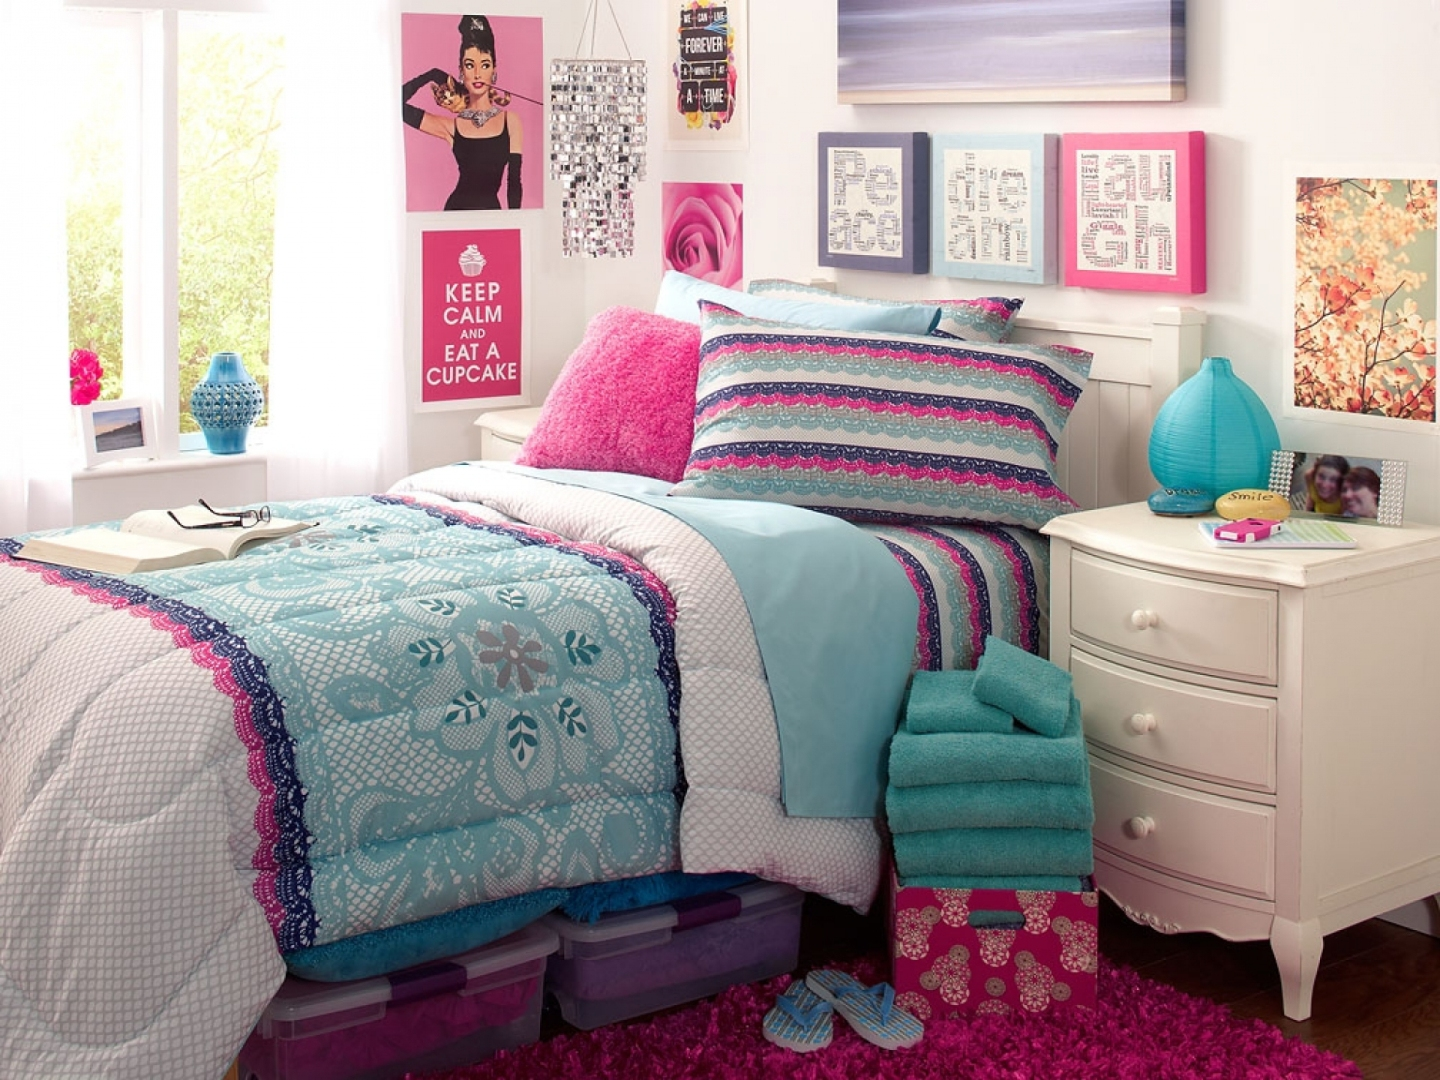 Cute wallpapers for teenage girls wallpapersafari Wallpaper for teenage girl bedroom